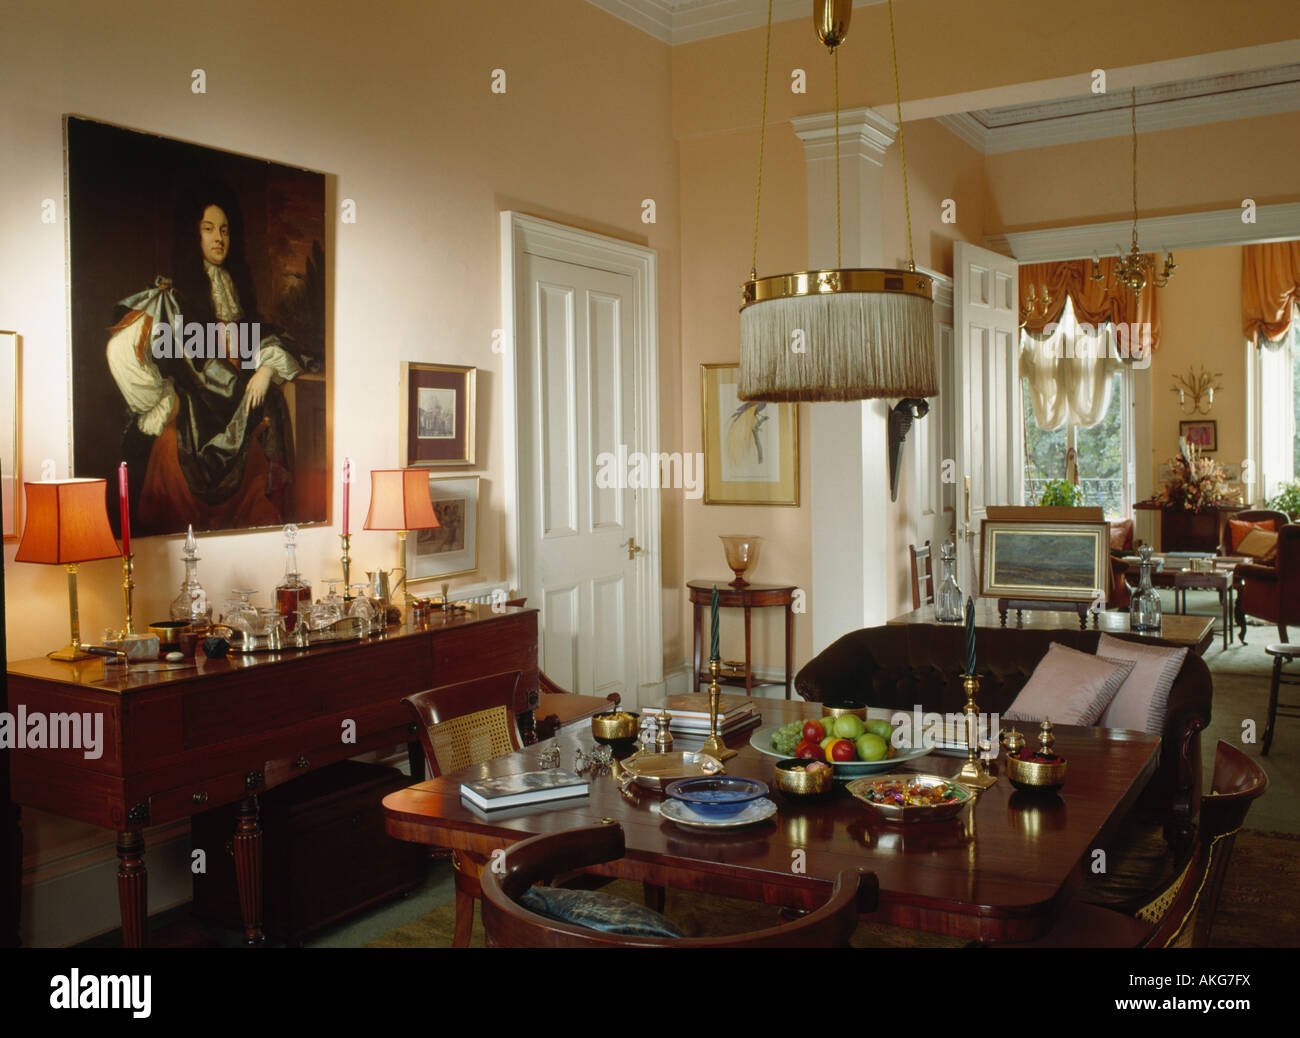 Large Oil Painting Above Sideboard In Traditional Townhouse Dining Room With Antique Table And Double Doors